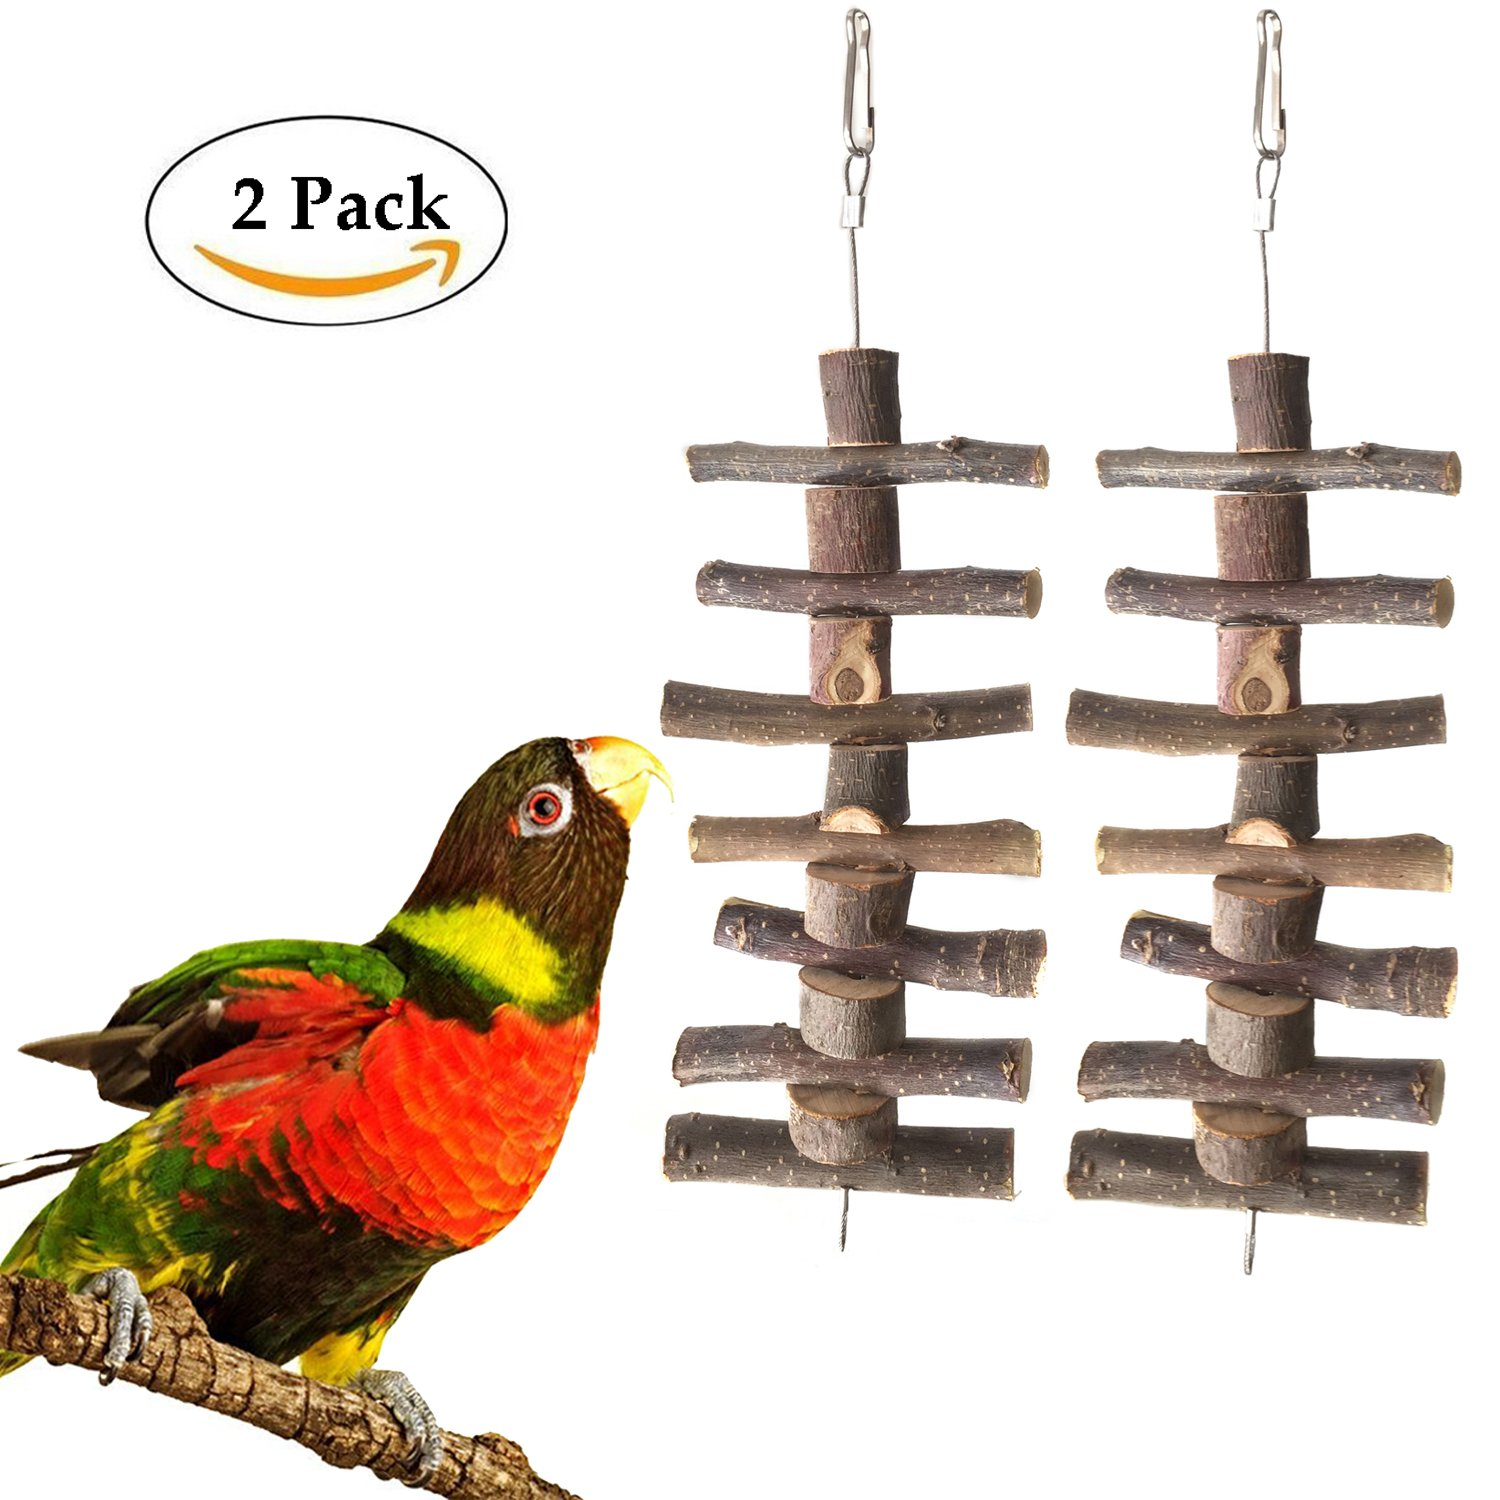 Bwogue Small Animal and Bird Chew Sticks,Natural Apple Branch Chew Toys Teeth Shred Clean Tool (Two piece) by Bwogue (Image #1)